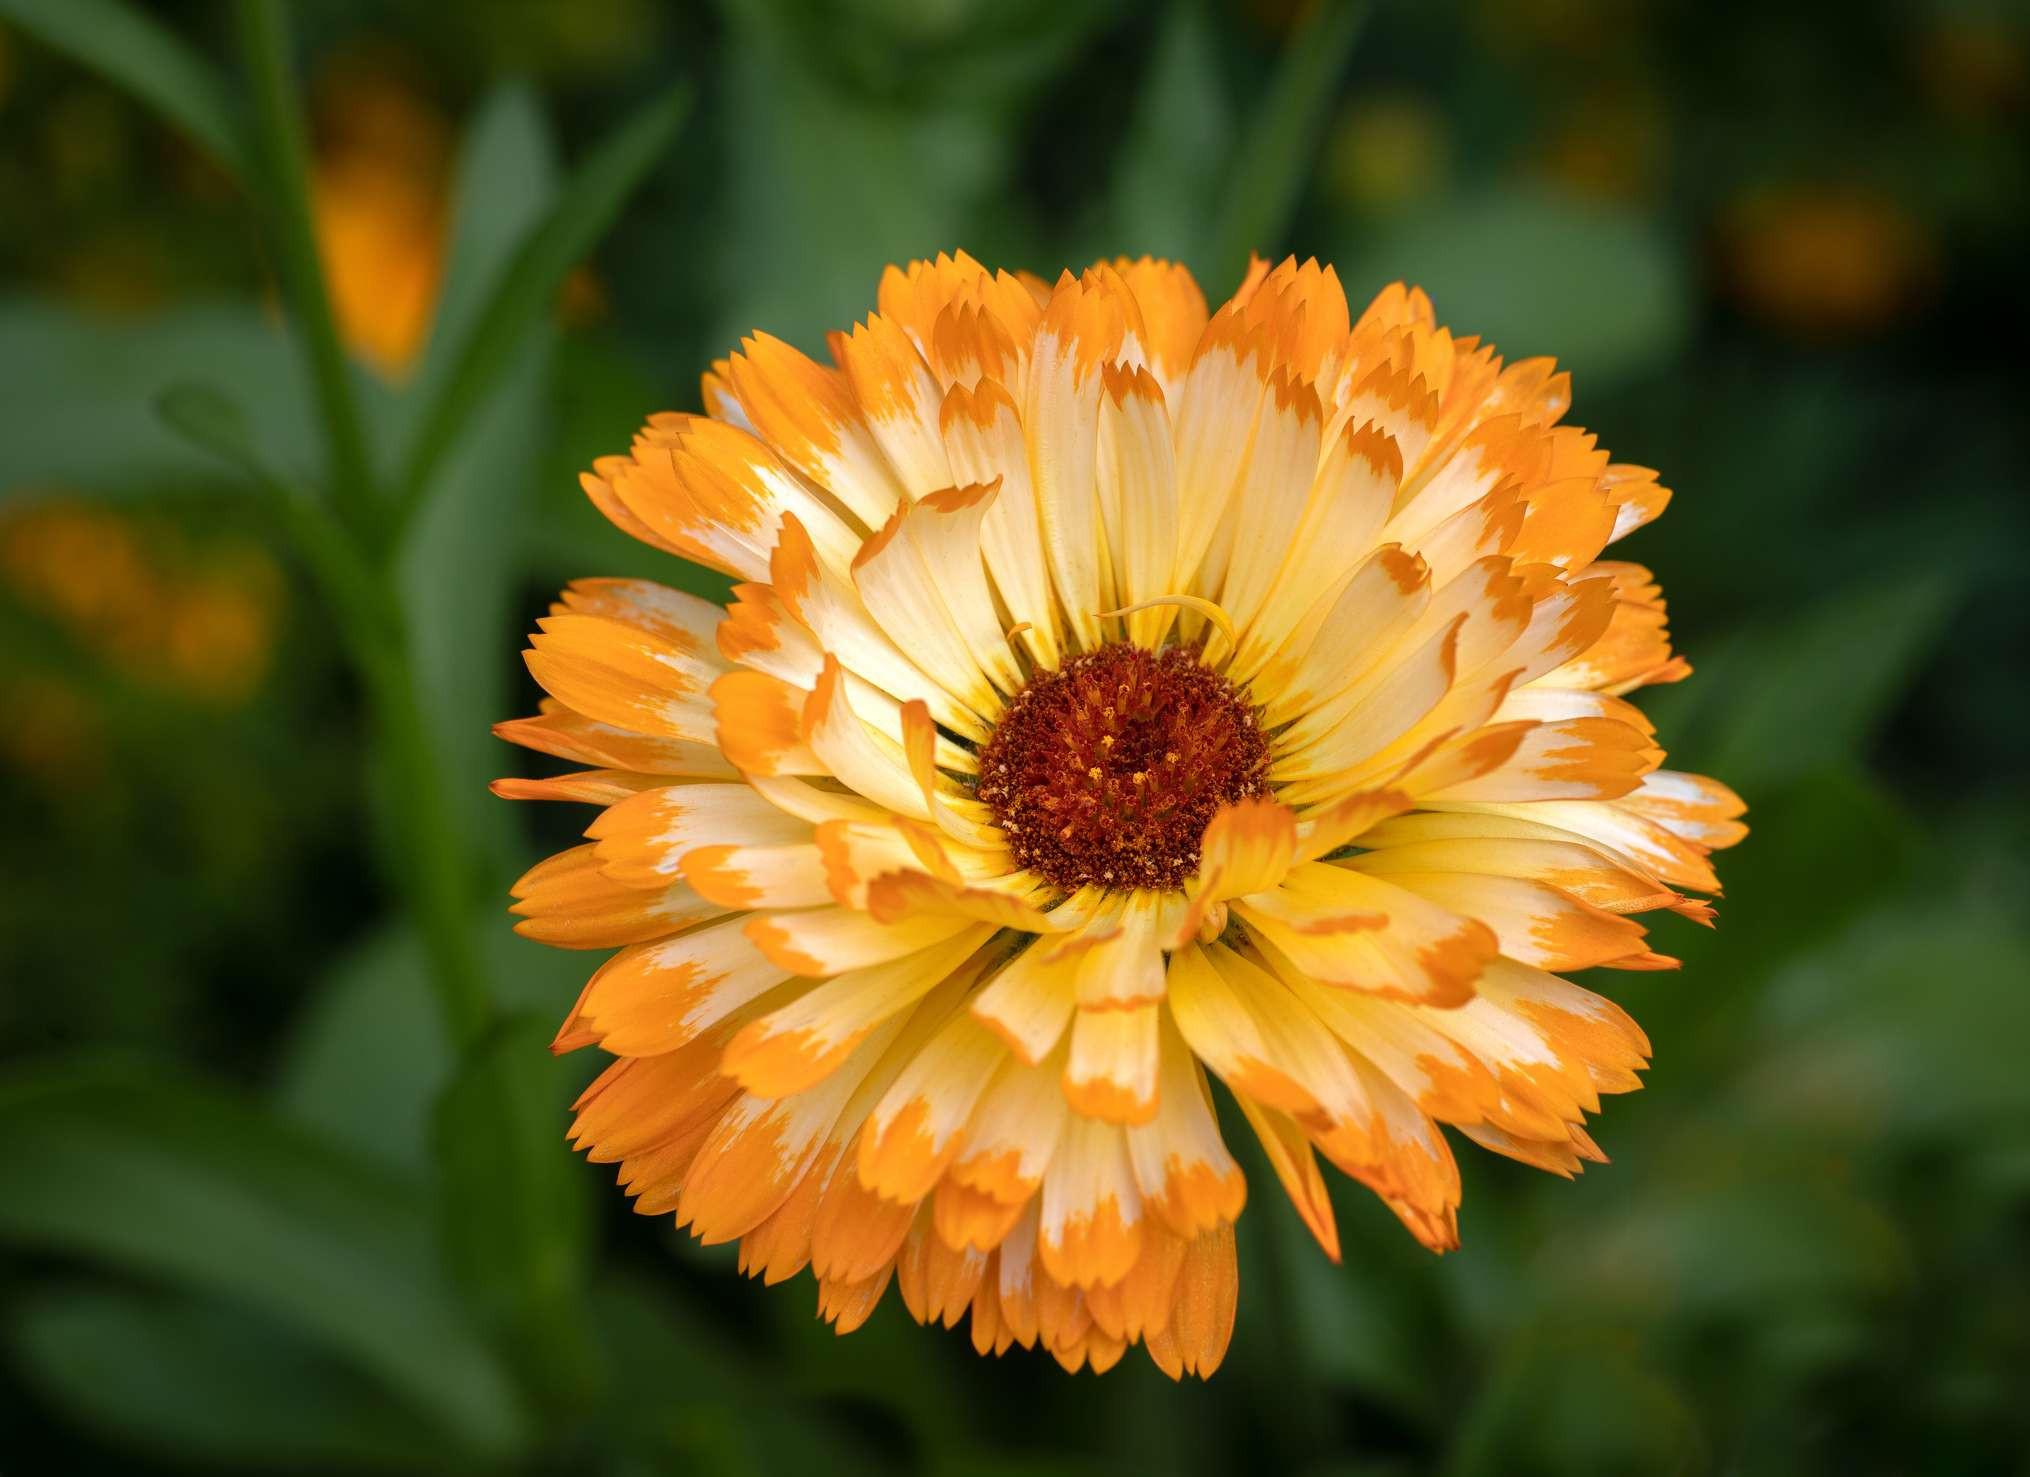 Close up image of a single Marigold Flower in full bloom - Calendula officinalis